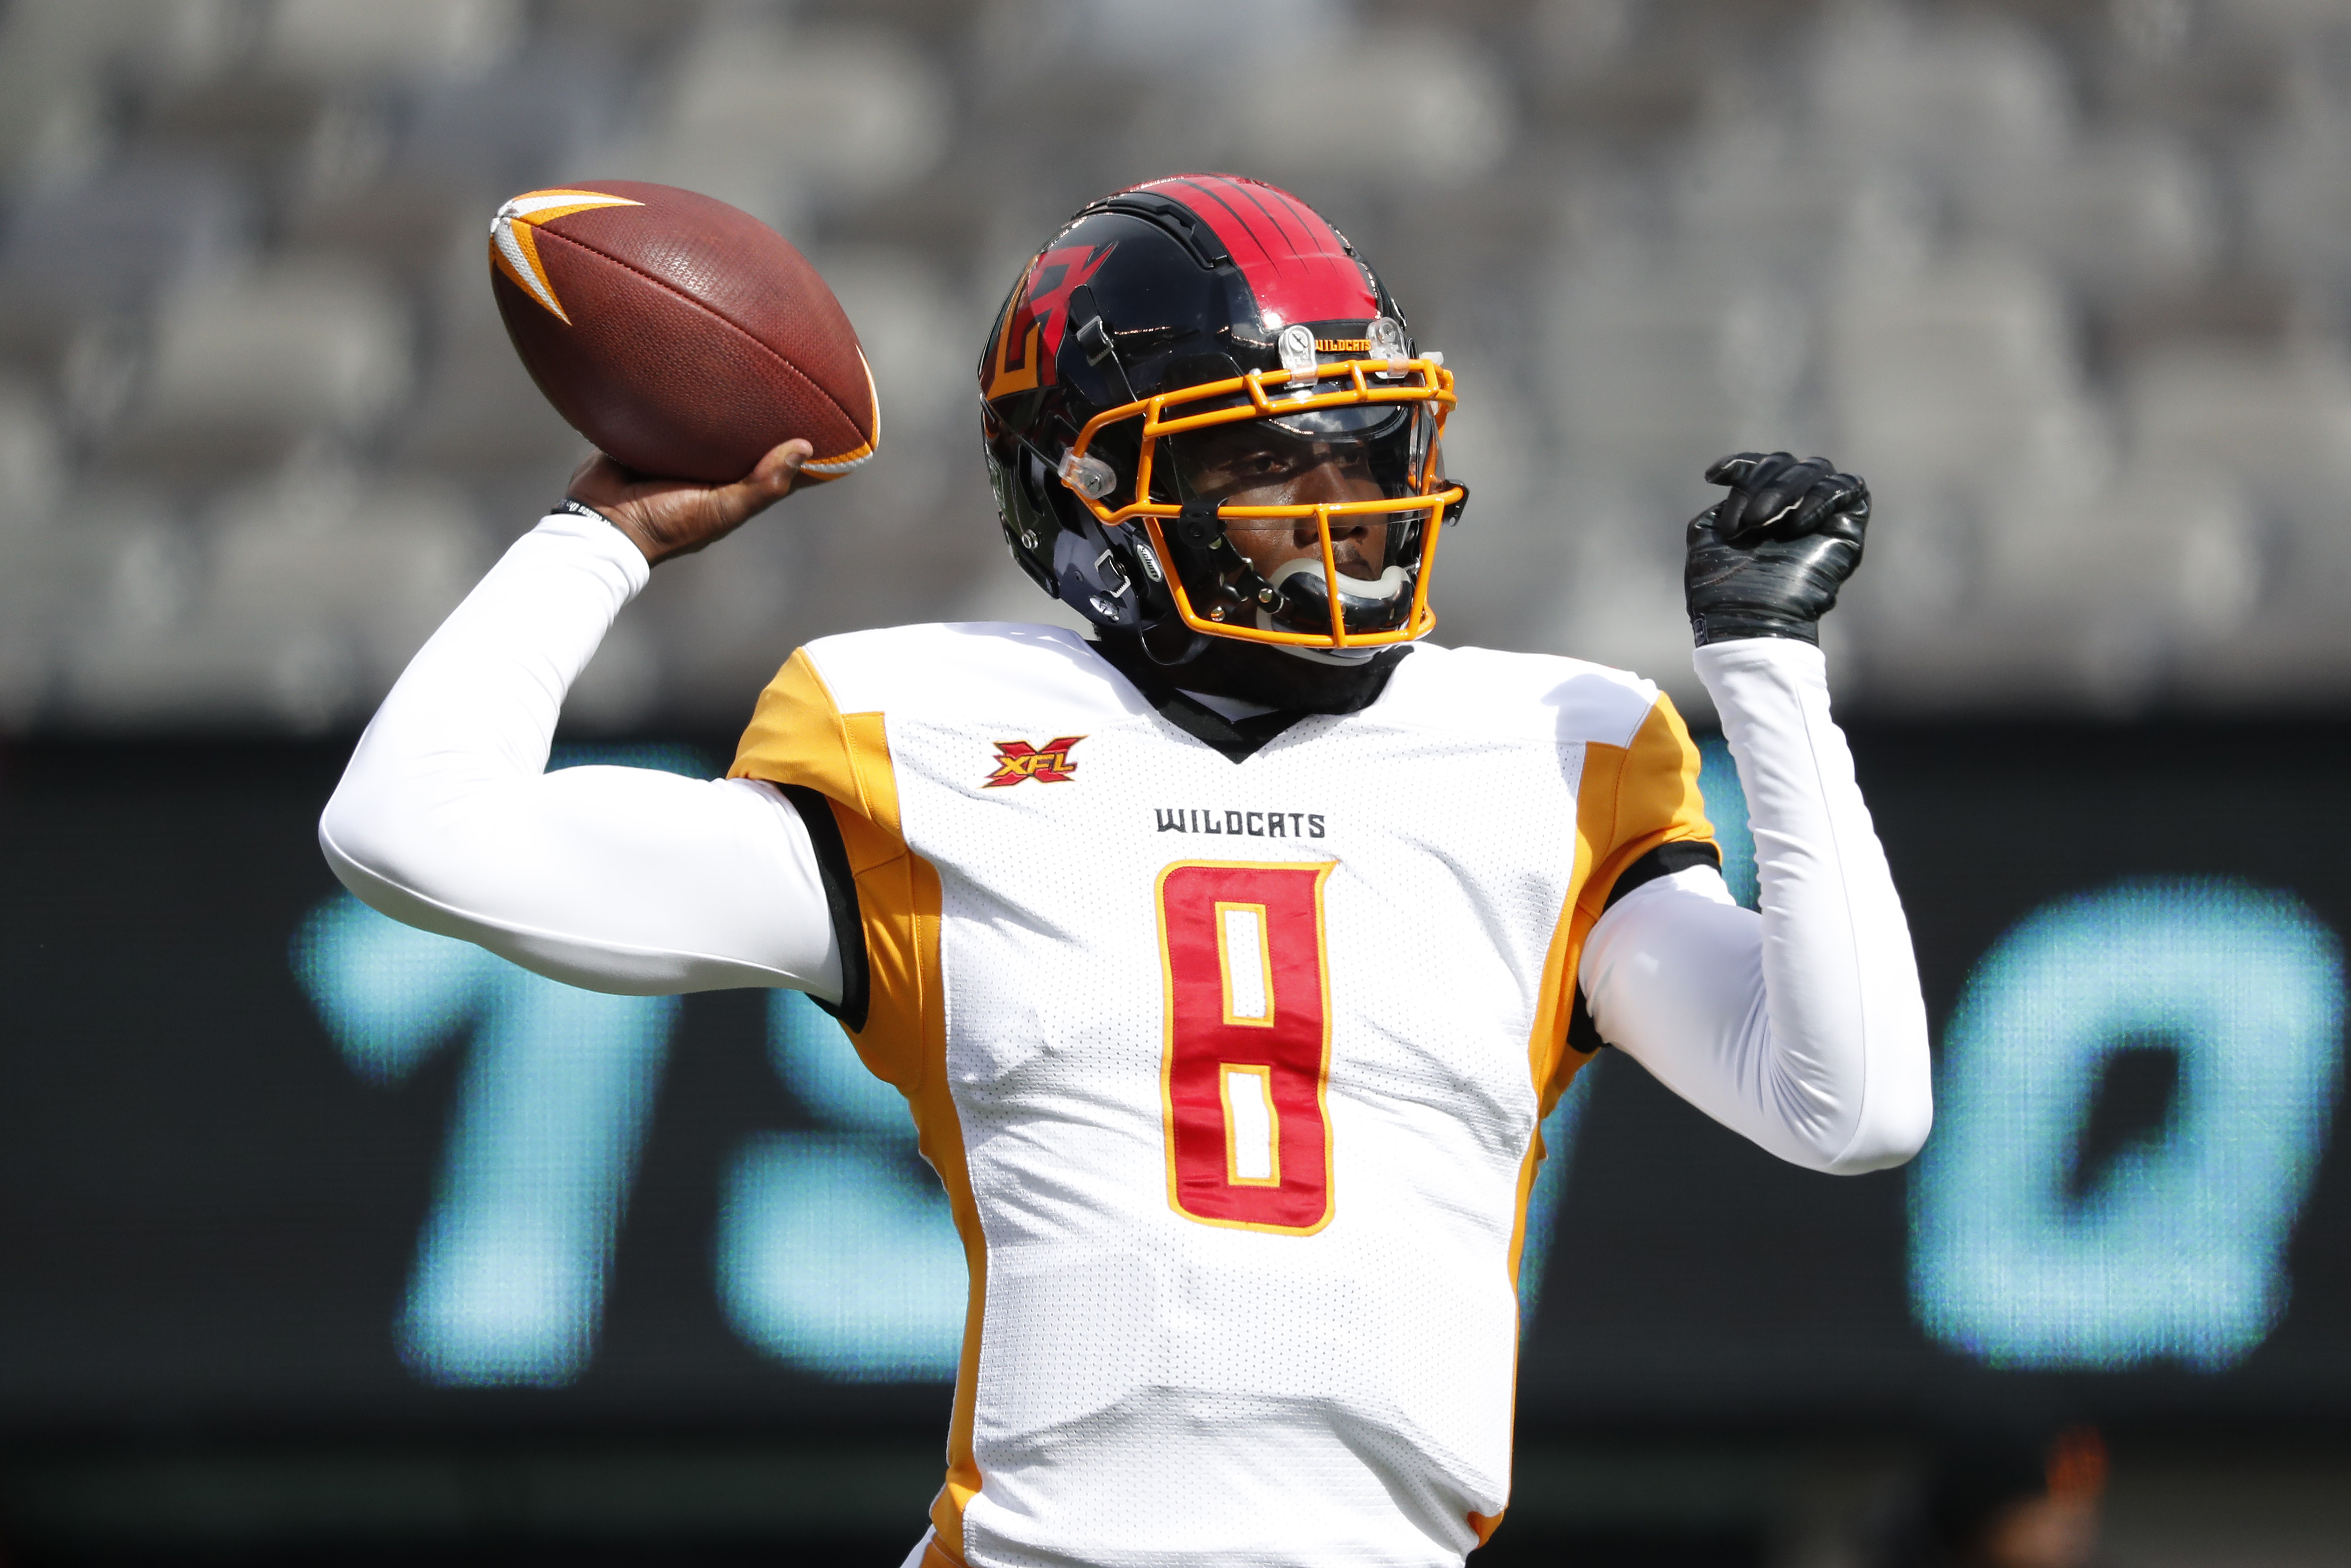 Josh Johnson #8 of the LA Wildcats during warmups before the start of of their XFL game against the NY Guardians at MetLife Stadium on February 29, 2020 in East Rutherford, New Jersey.